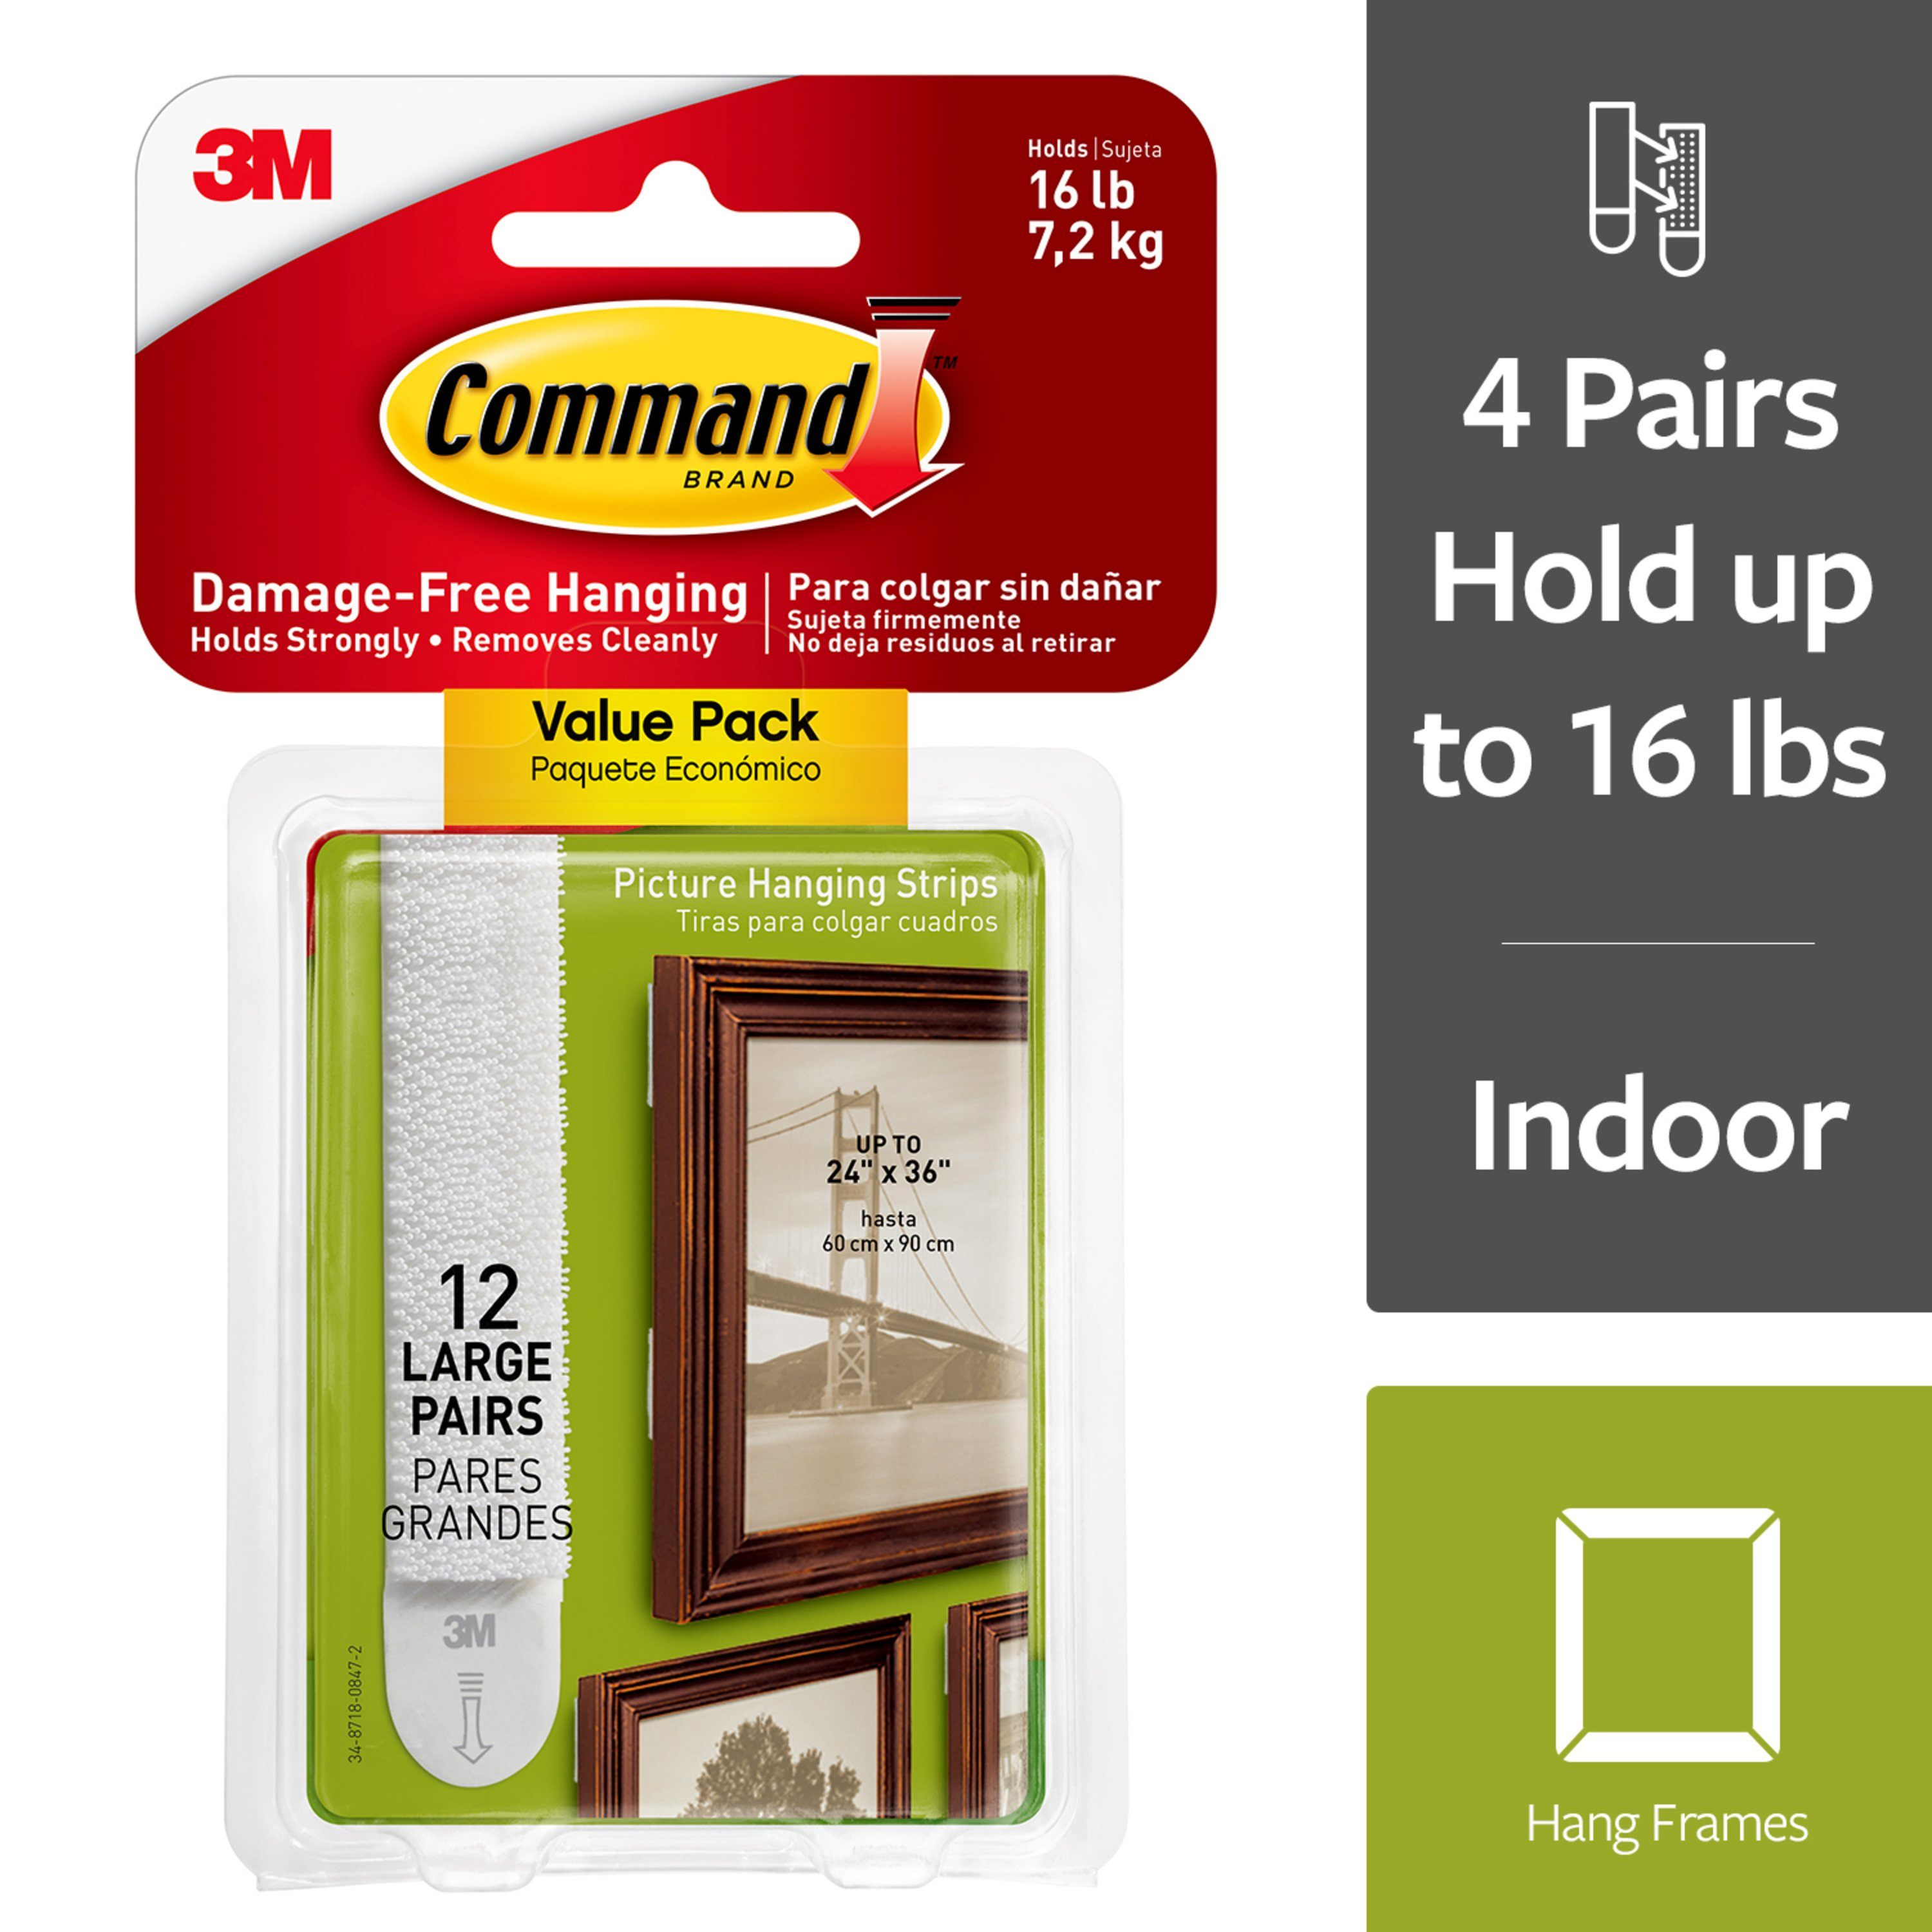 3M Command Picture Hanging Strips, 4 pairs hold 16 lbs, Create Gallery Walls, 12 Pairs (24 Strips, Value Pack)